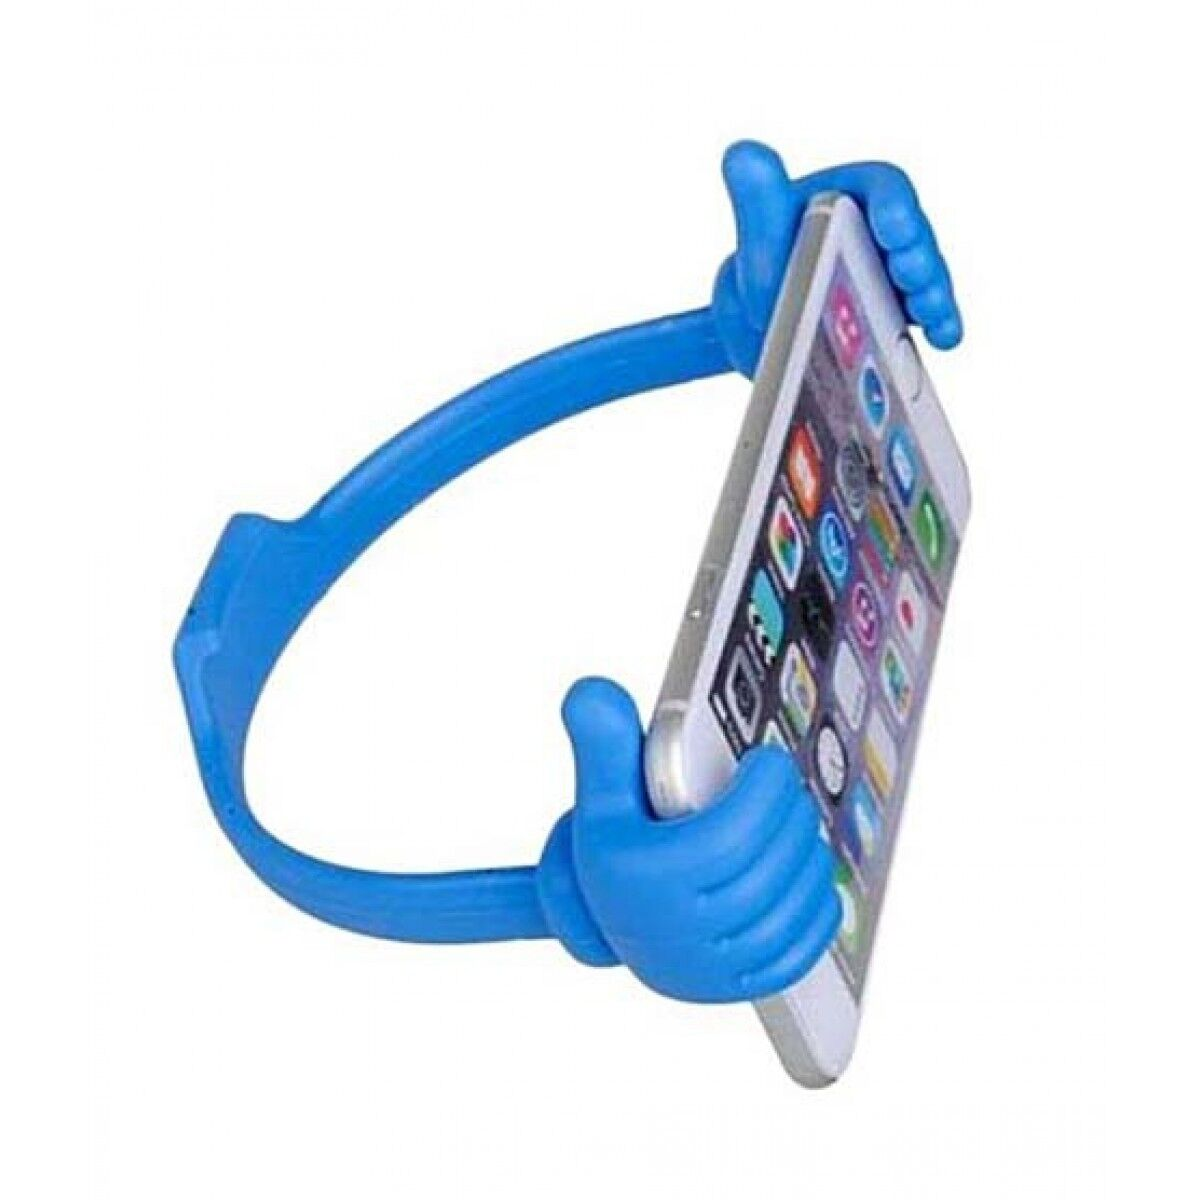 Rubian Universal Hand Palm Stand For Tablets And Smart Phones